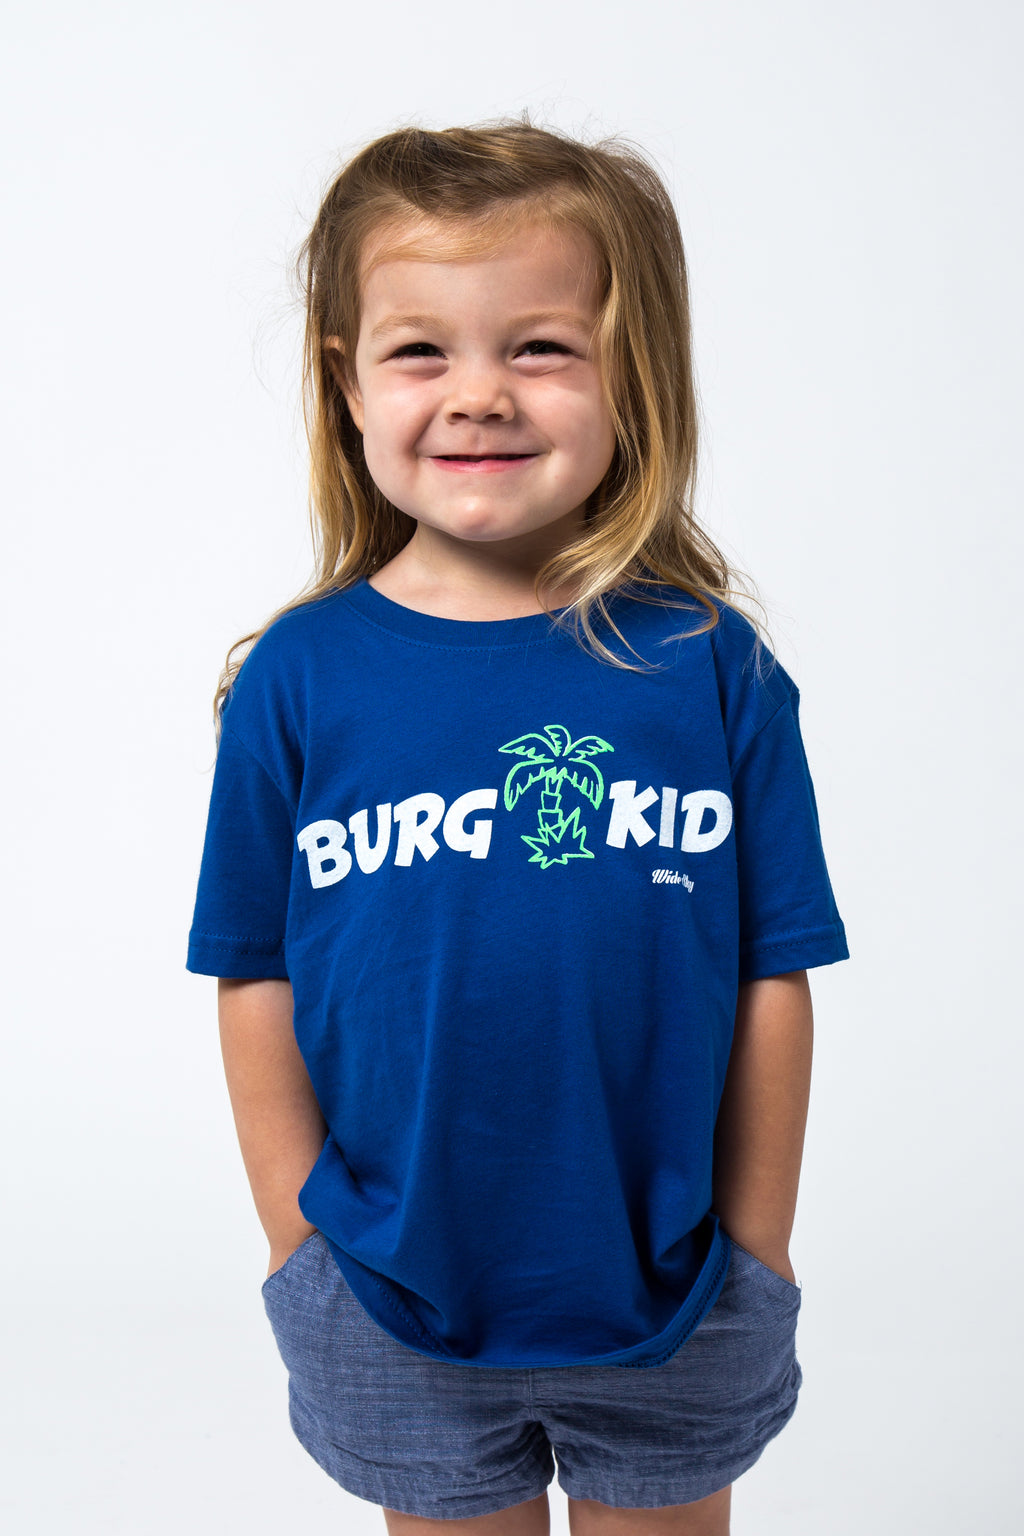 Burg Kid Palm Tee